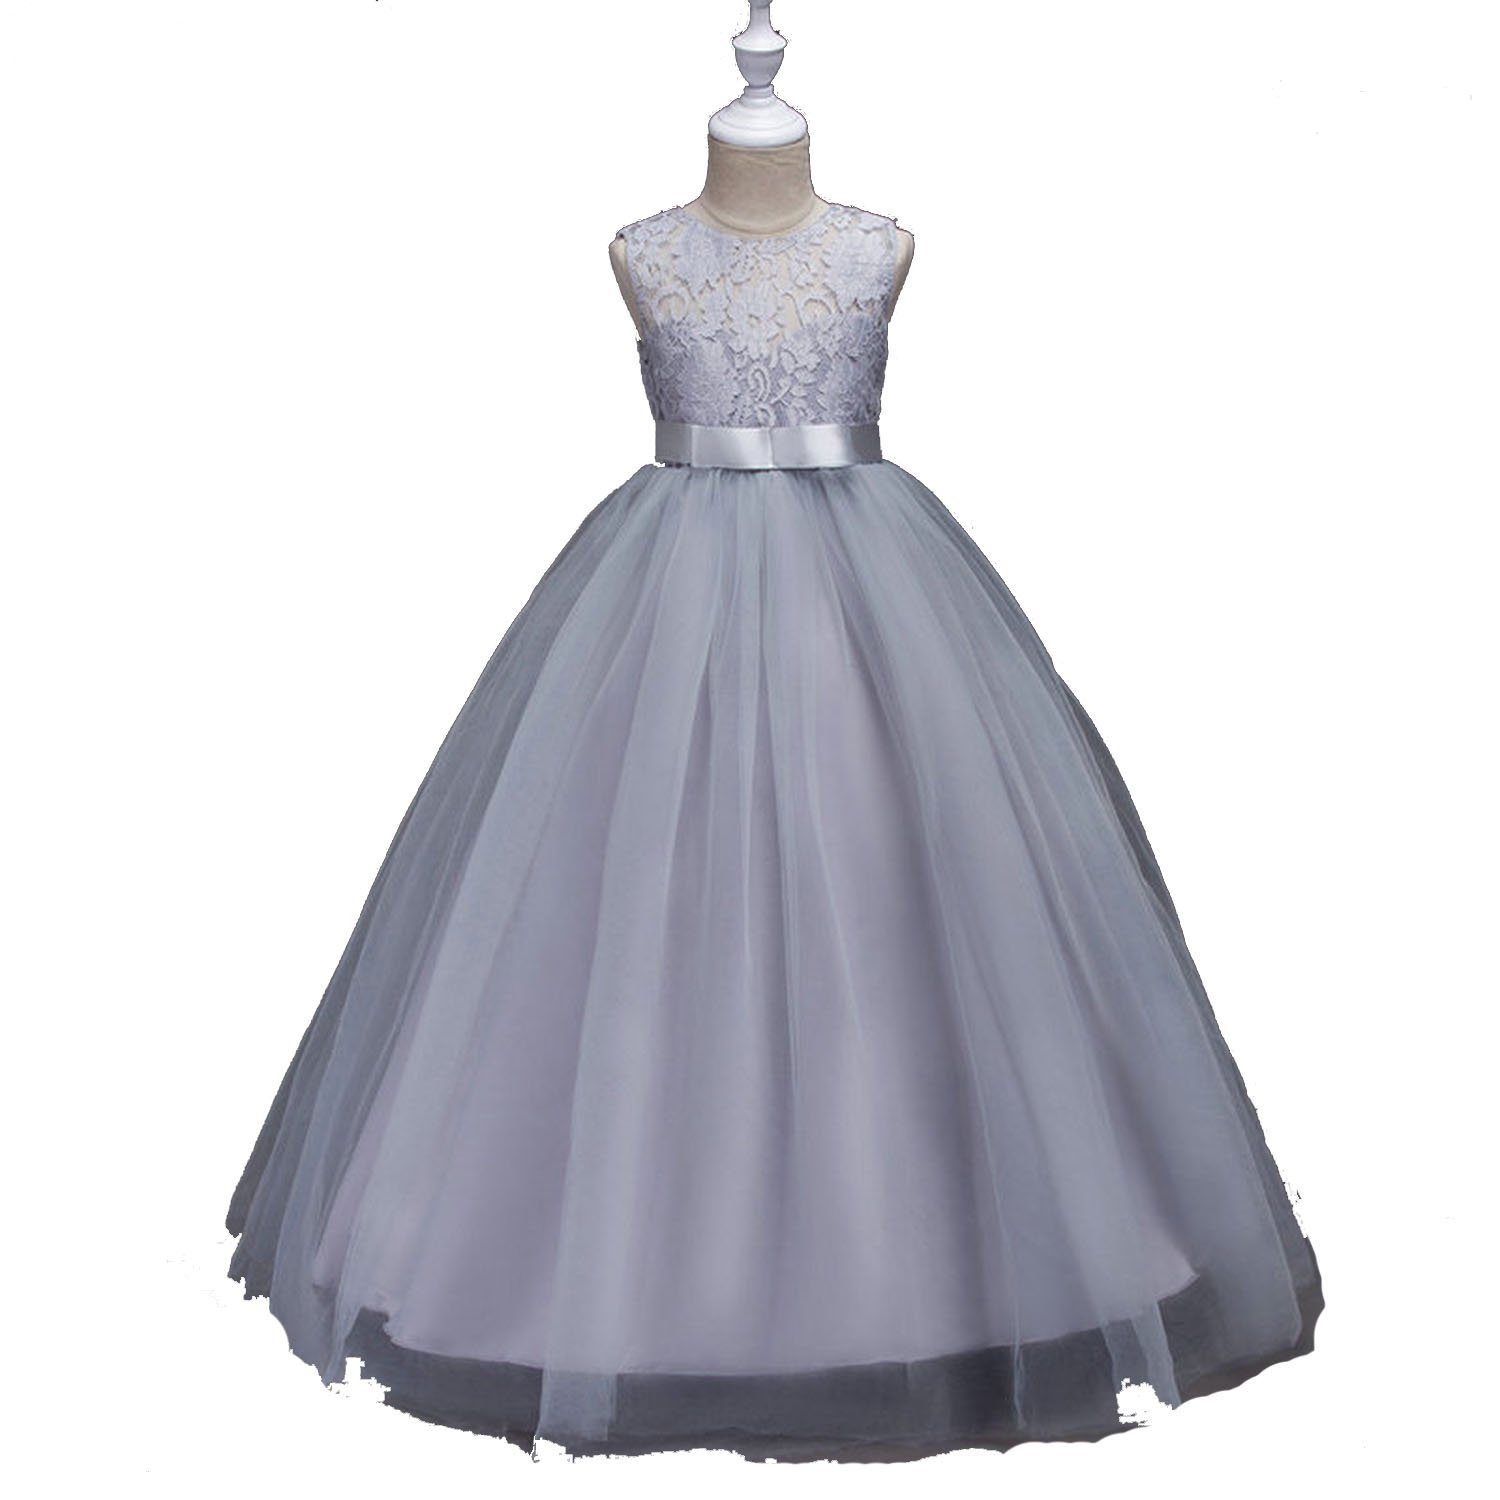 White Lace Flower Girl Dresses for Weddings Baby Kids Dresses for Girls Clothes Long Formal Ball Gown,as pic,12T